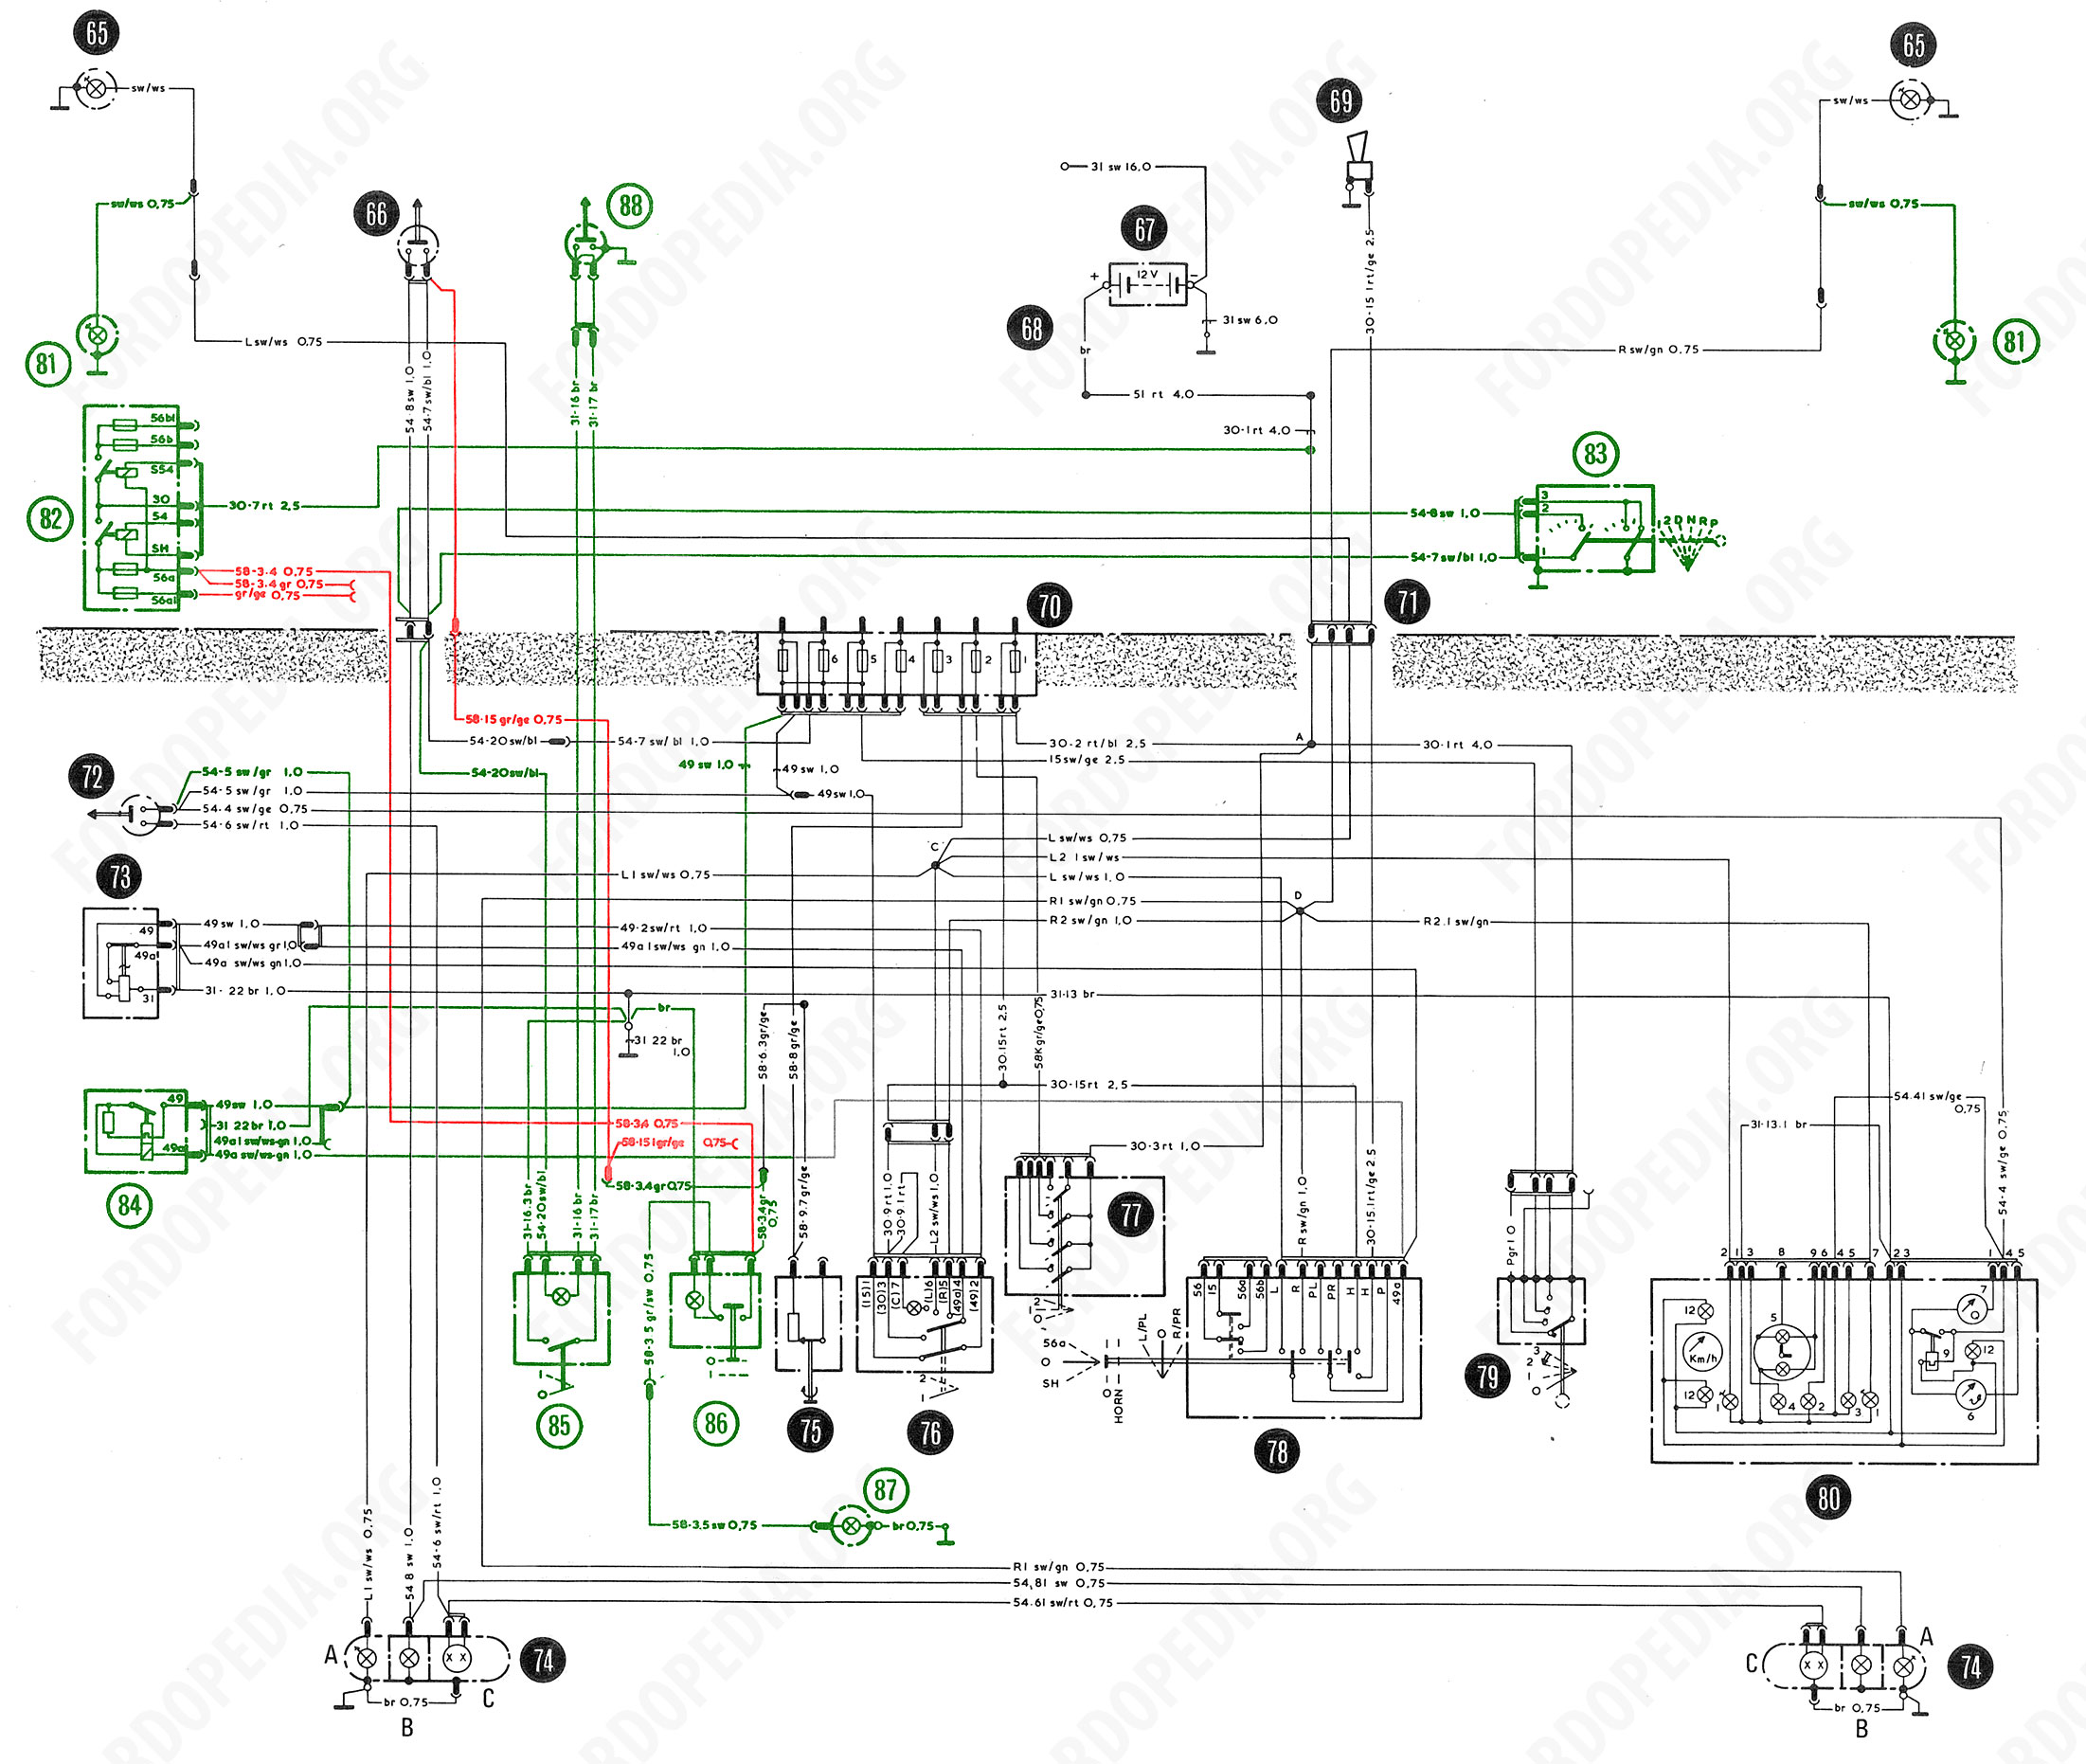 Wiring For Lamp Switch Download Full Size Image 2191x1965 348 Kb Diagrams Taunus Tc2 Cortina Mk4 Base Version L Gl